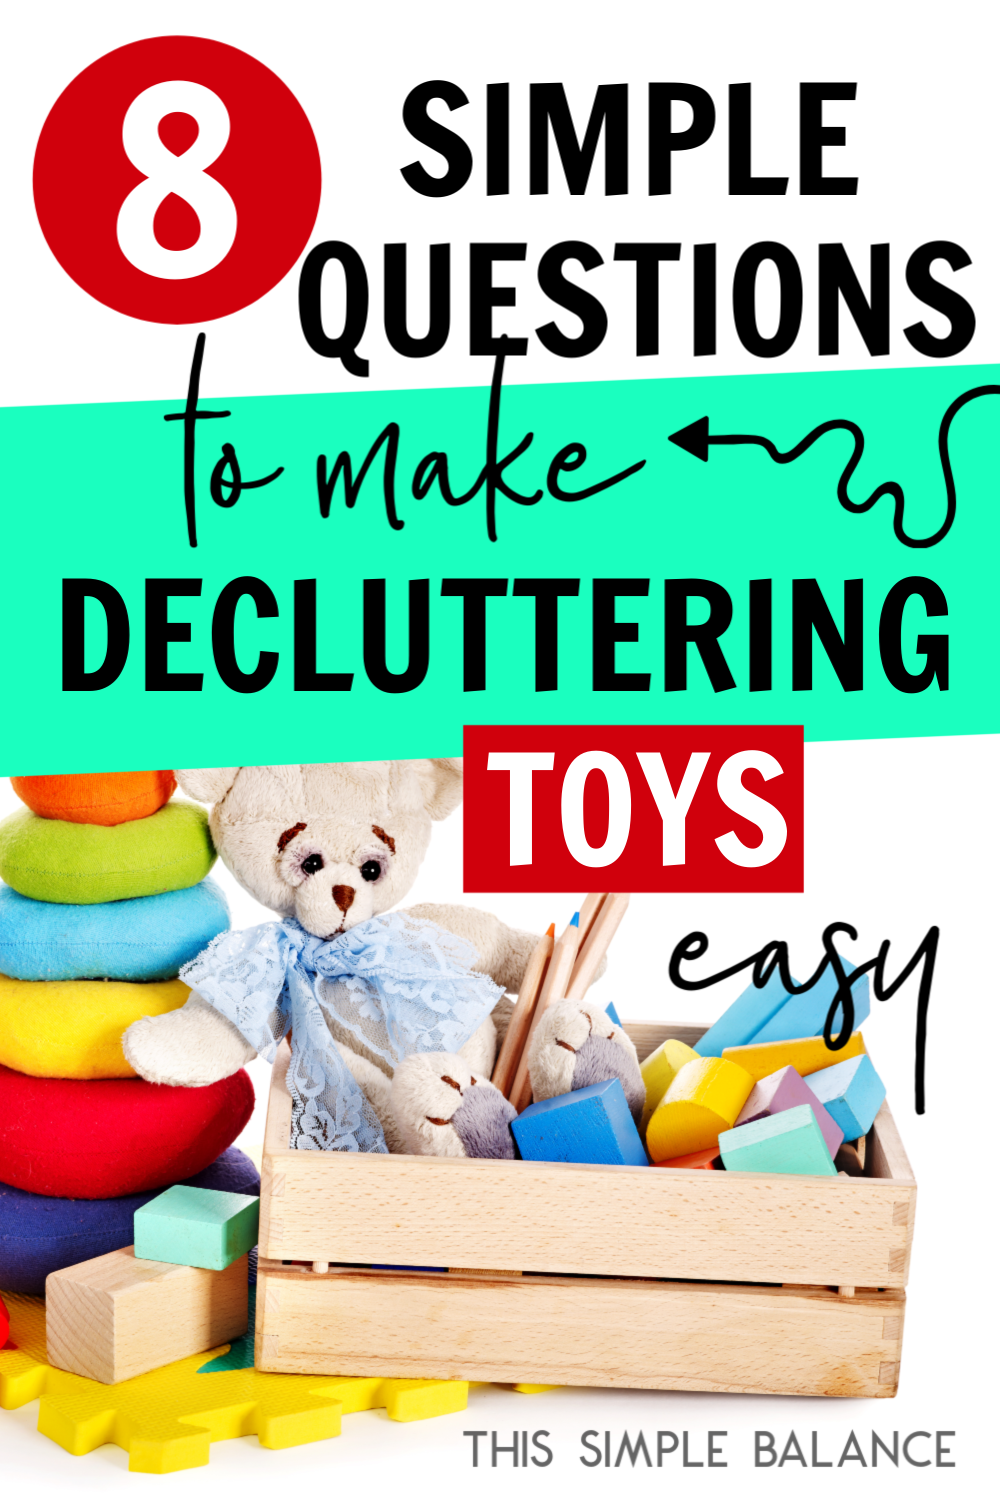 Decluttering toys can feel overwhelming. Use these 8 simple questions to make it easier!